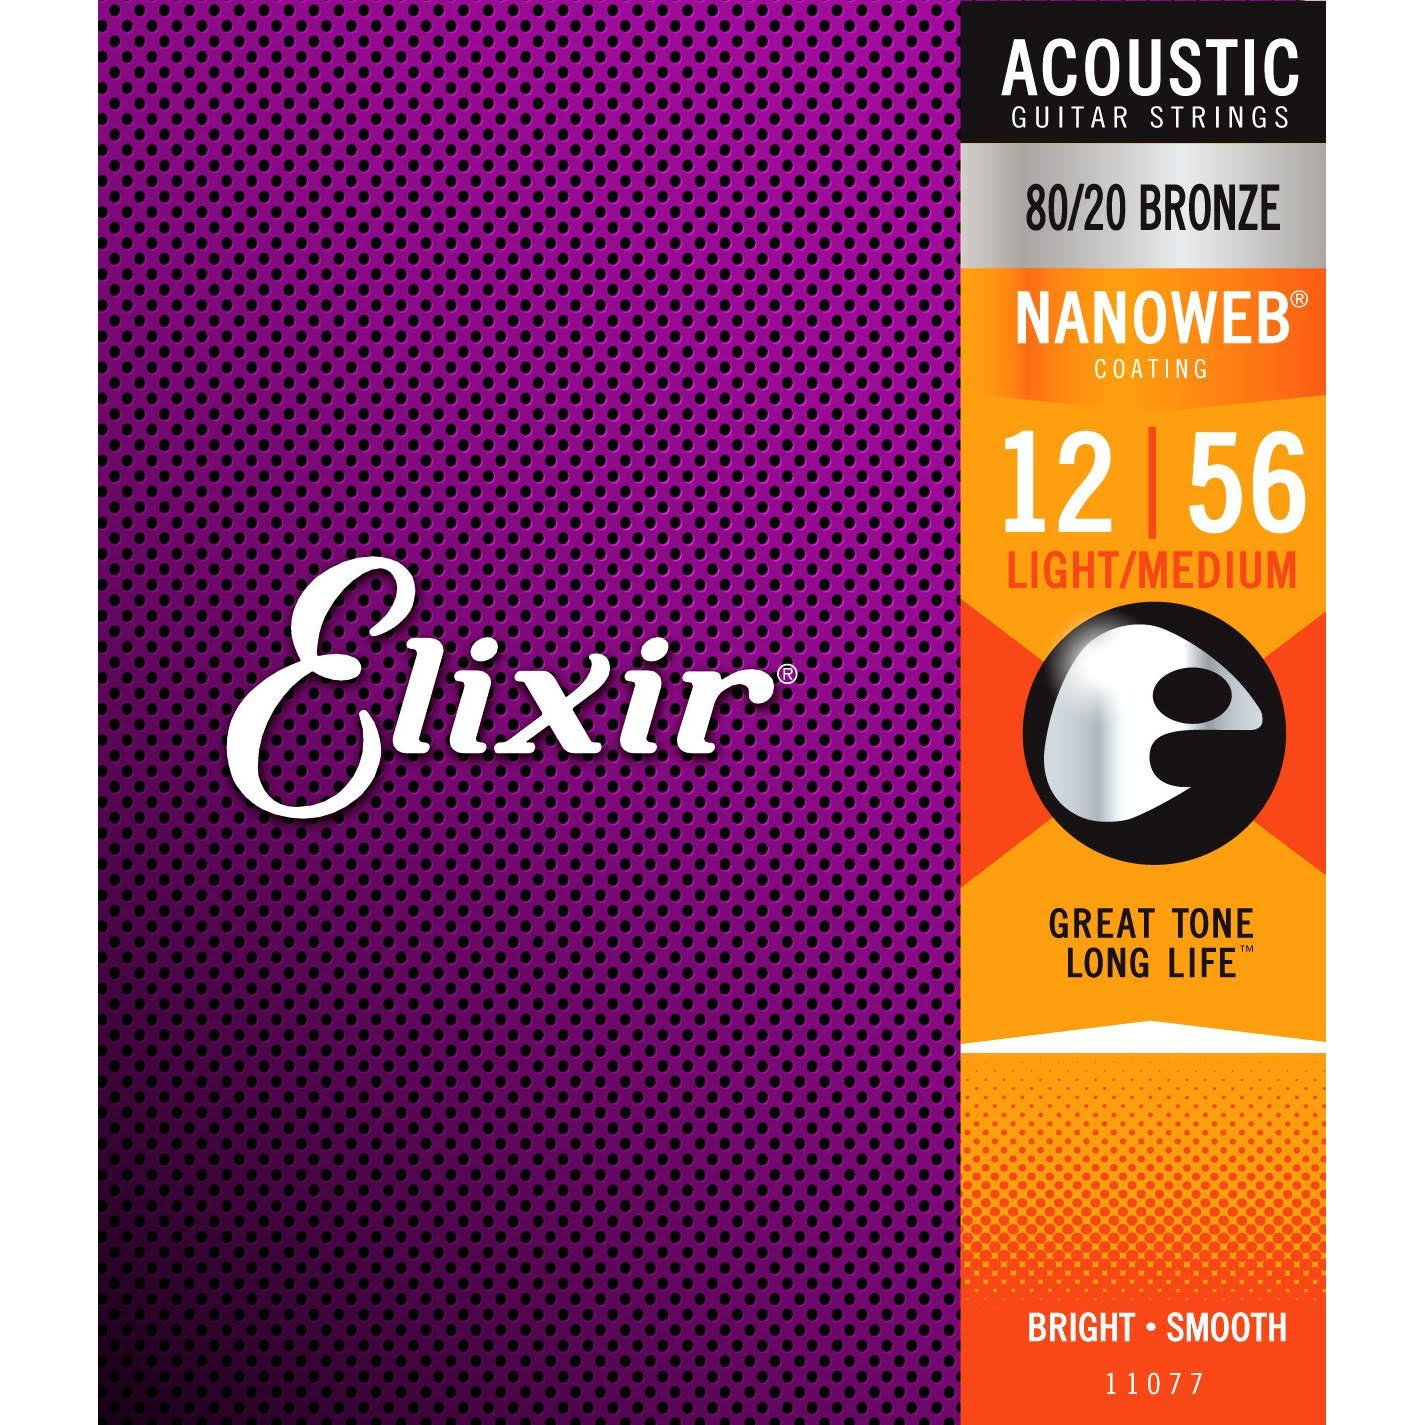 Elixir Nanoweb 80/20 Bronze Acoustic Guitar Strings Set - Light-Medium